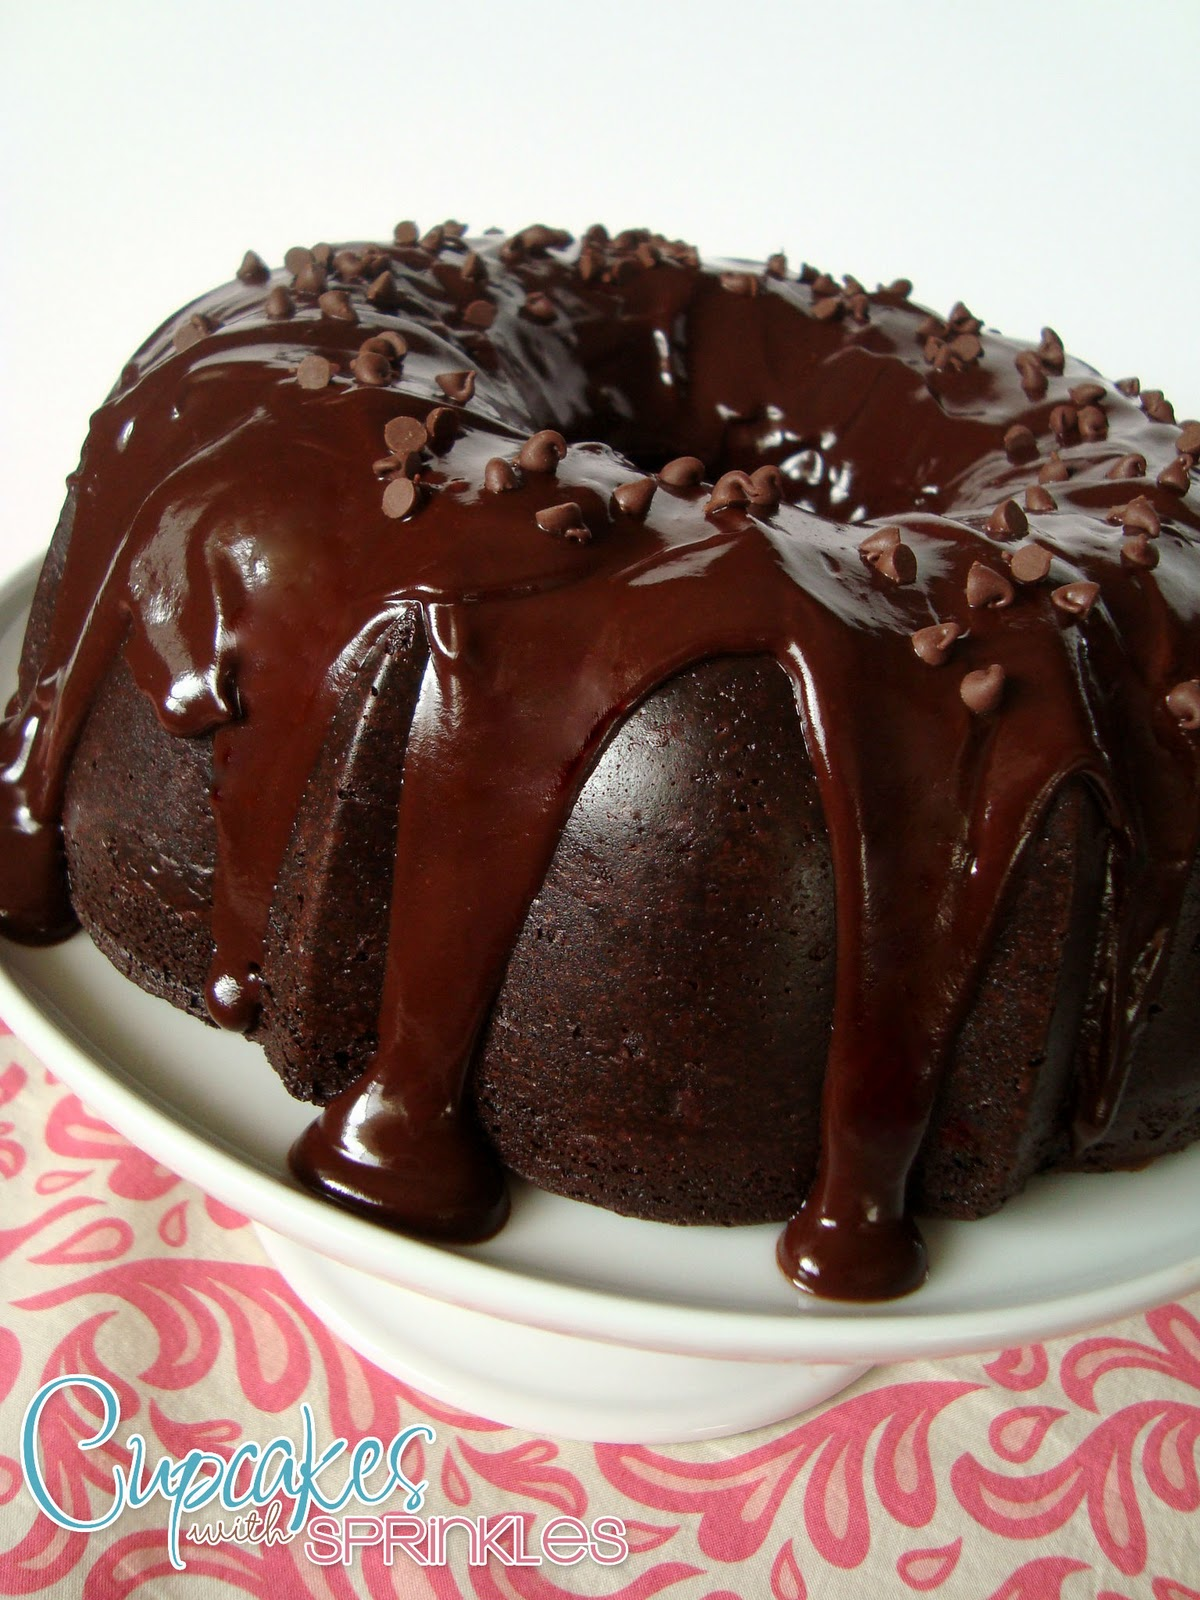 Cupcakes with Sprinkles: Chocolate Bundt Cake